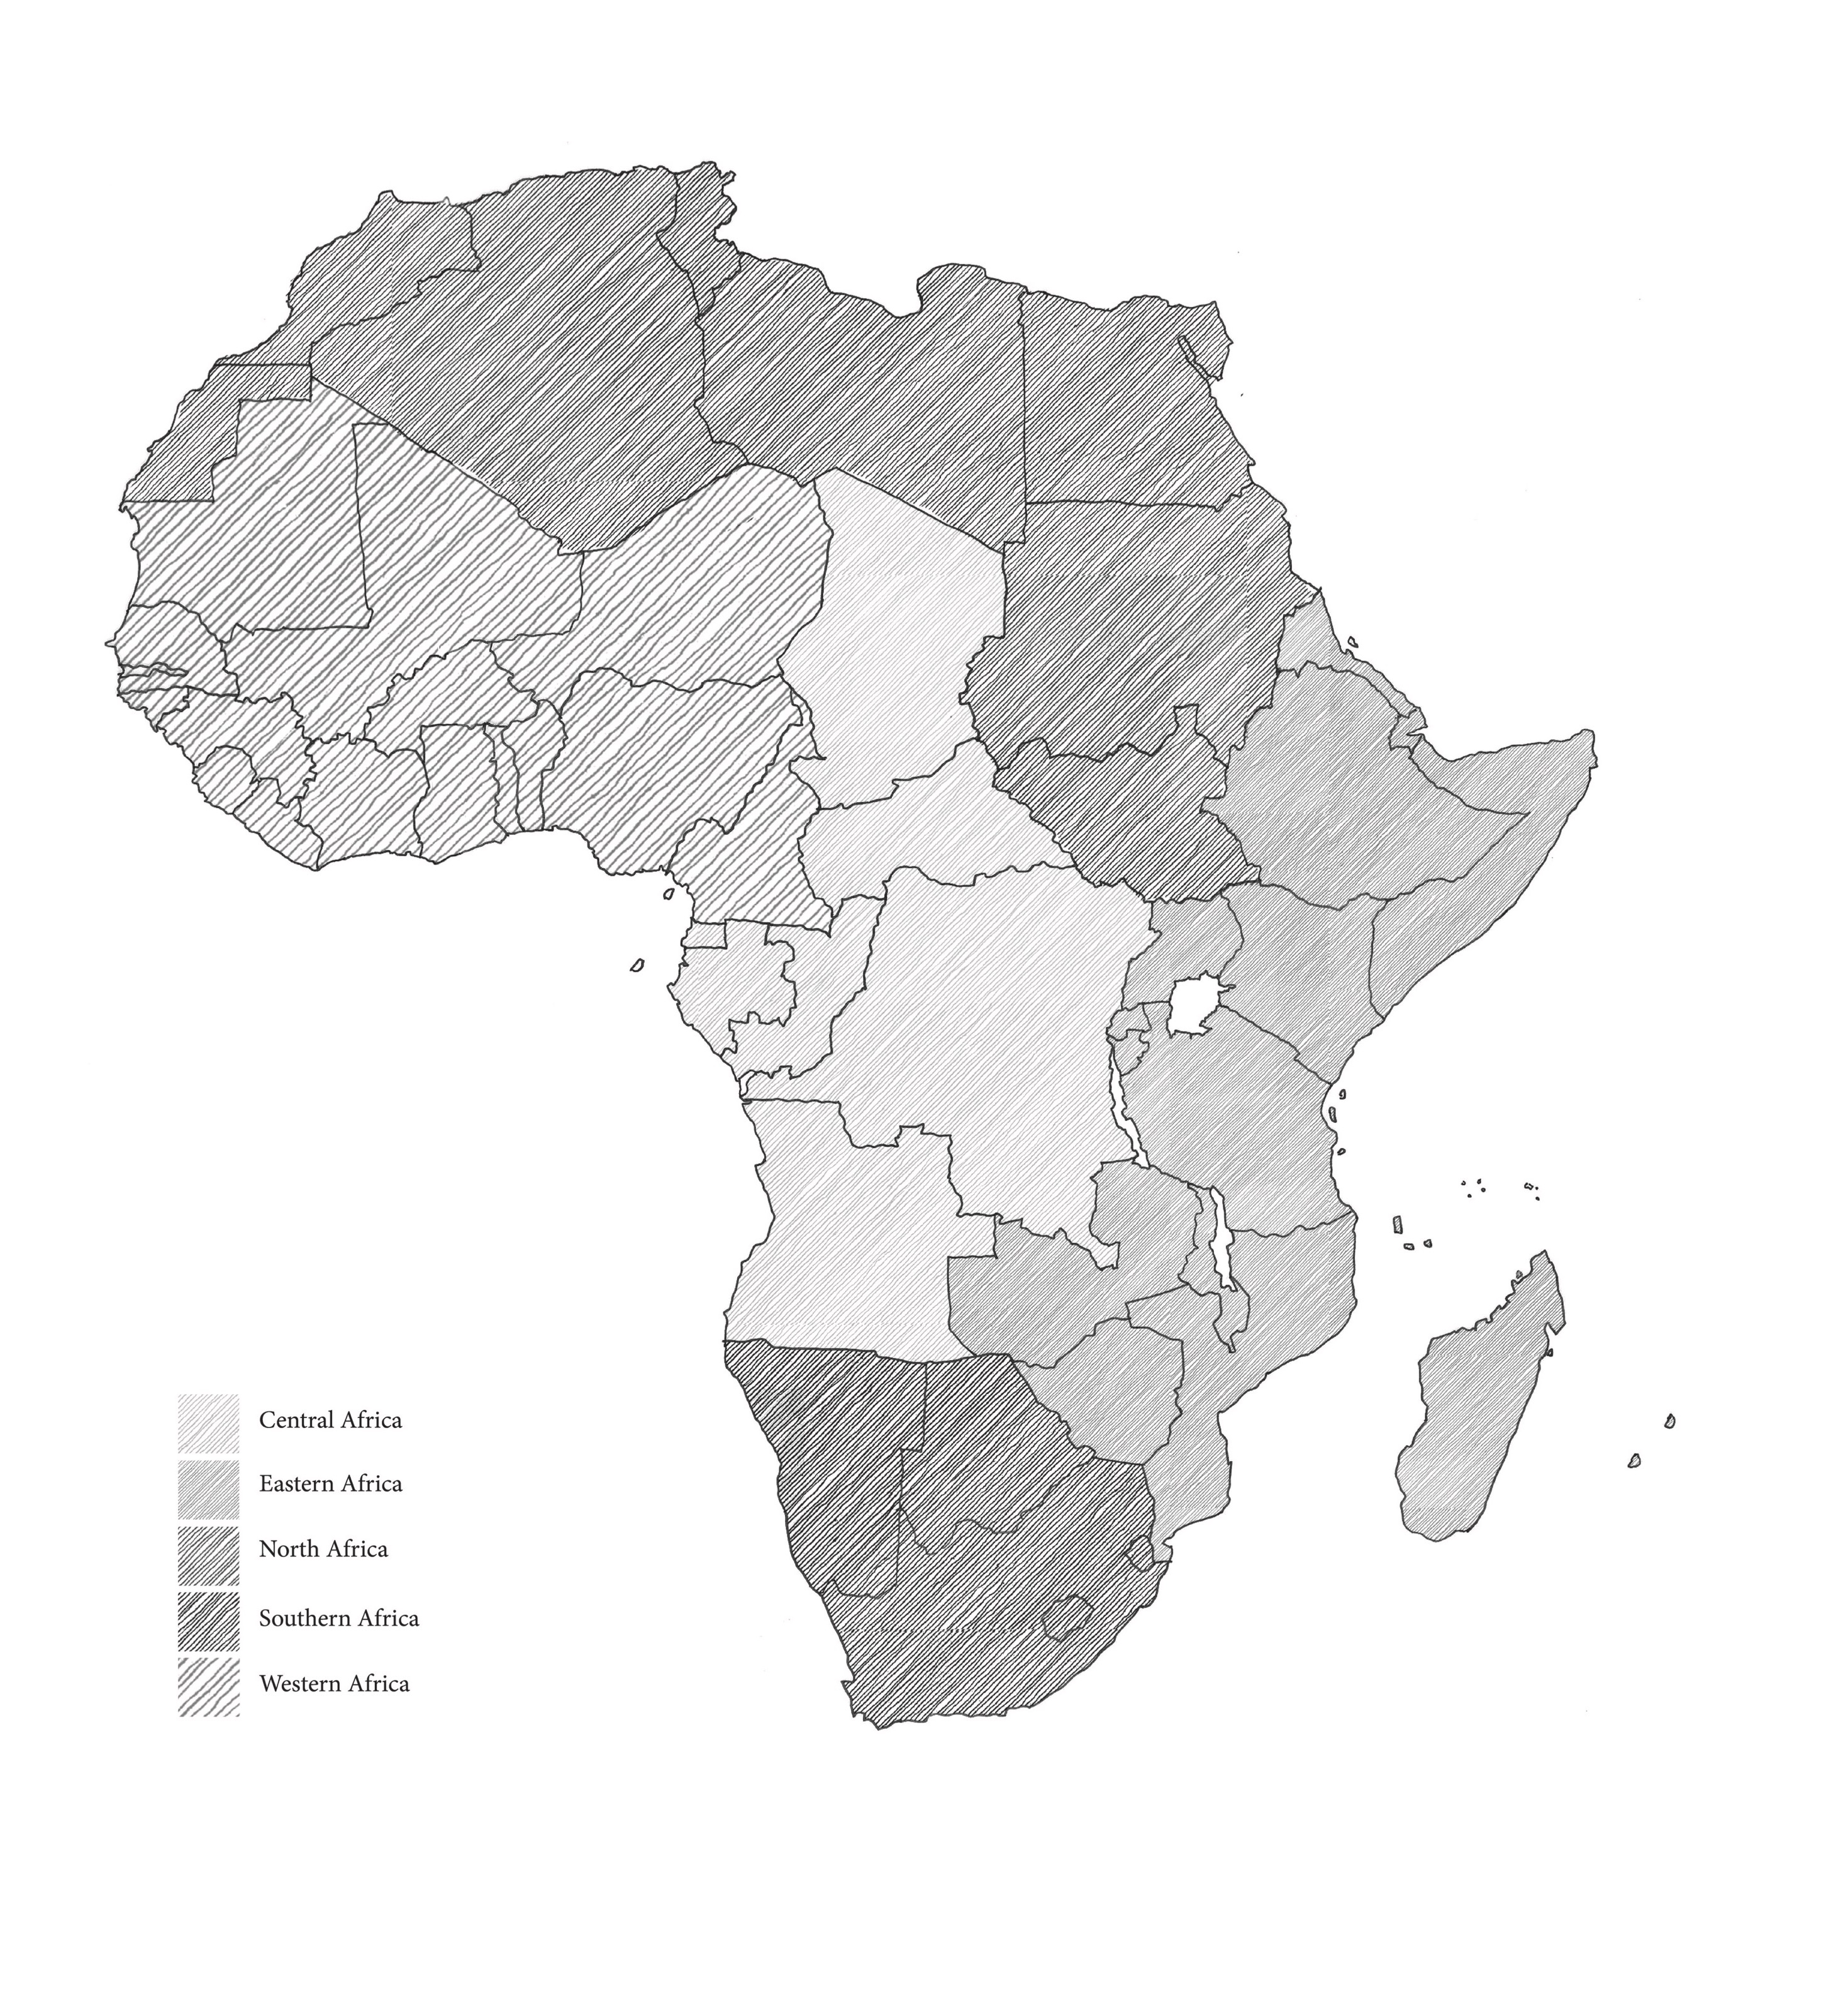 Africa_Drawn_List_of_Contents.jpg